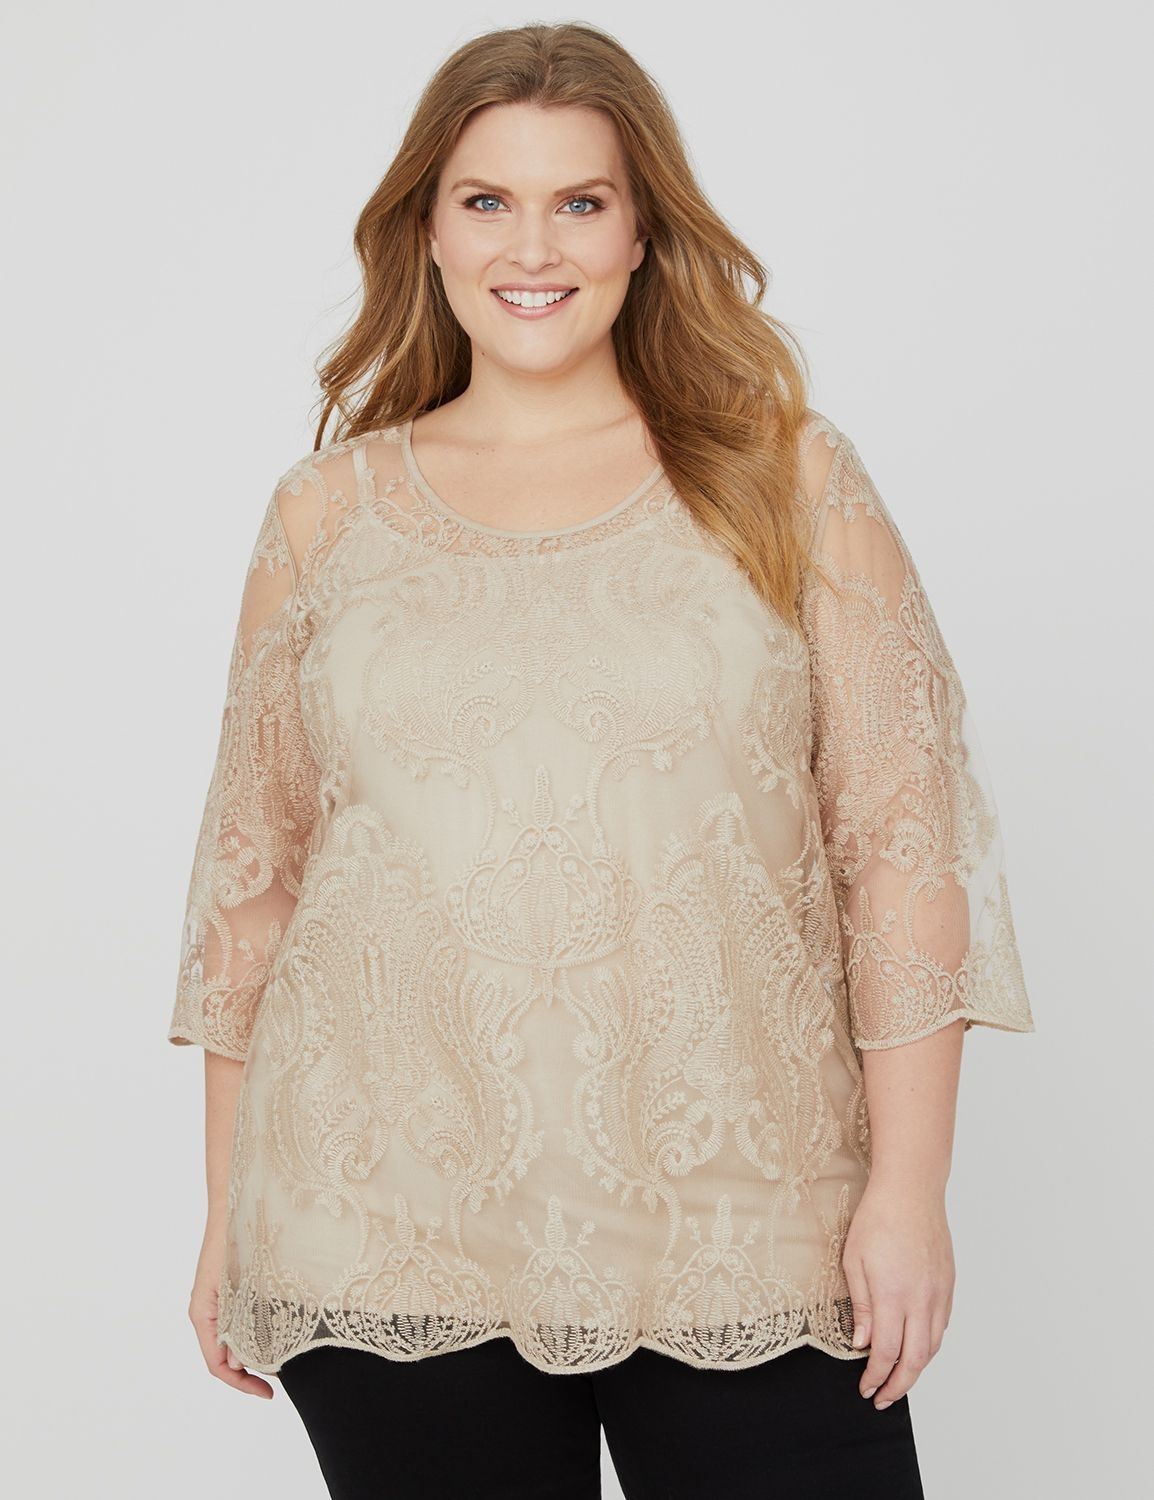 Soft Afterglow Top 1091394 Nuance Mesh Embroidered Tun MP-300103673